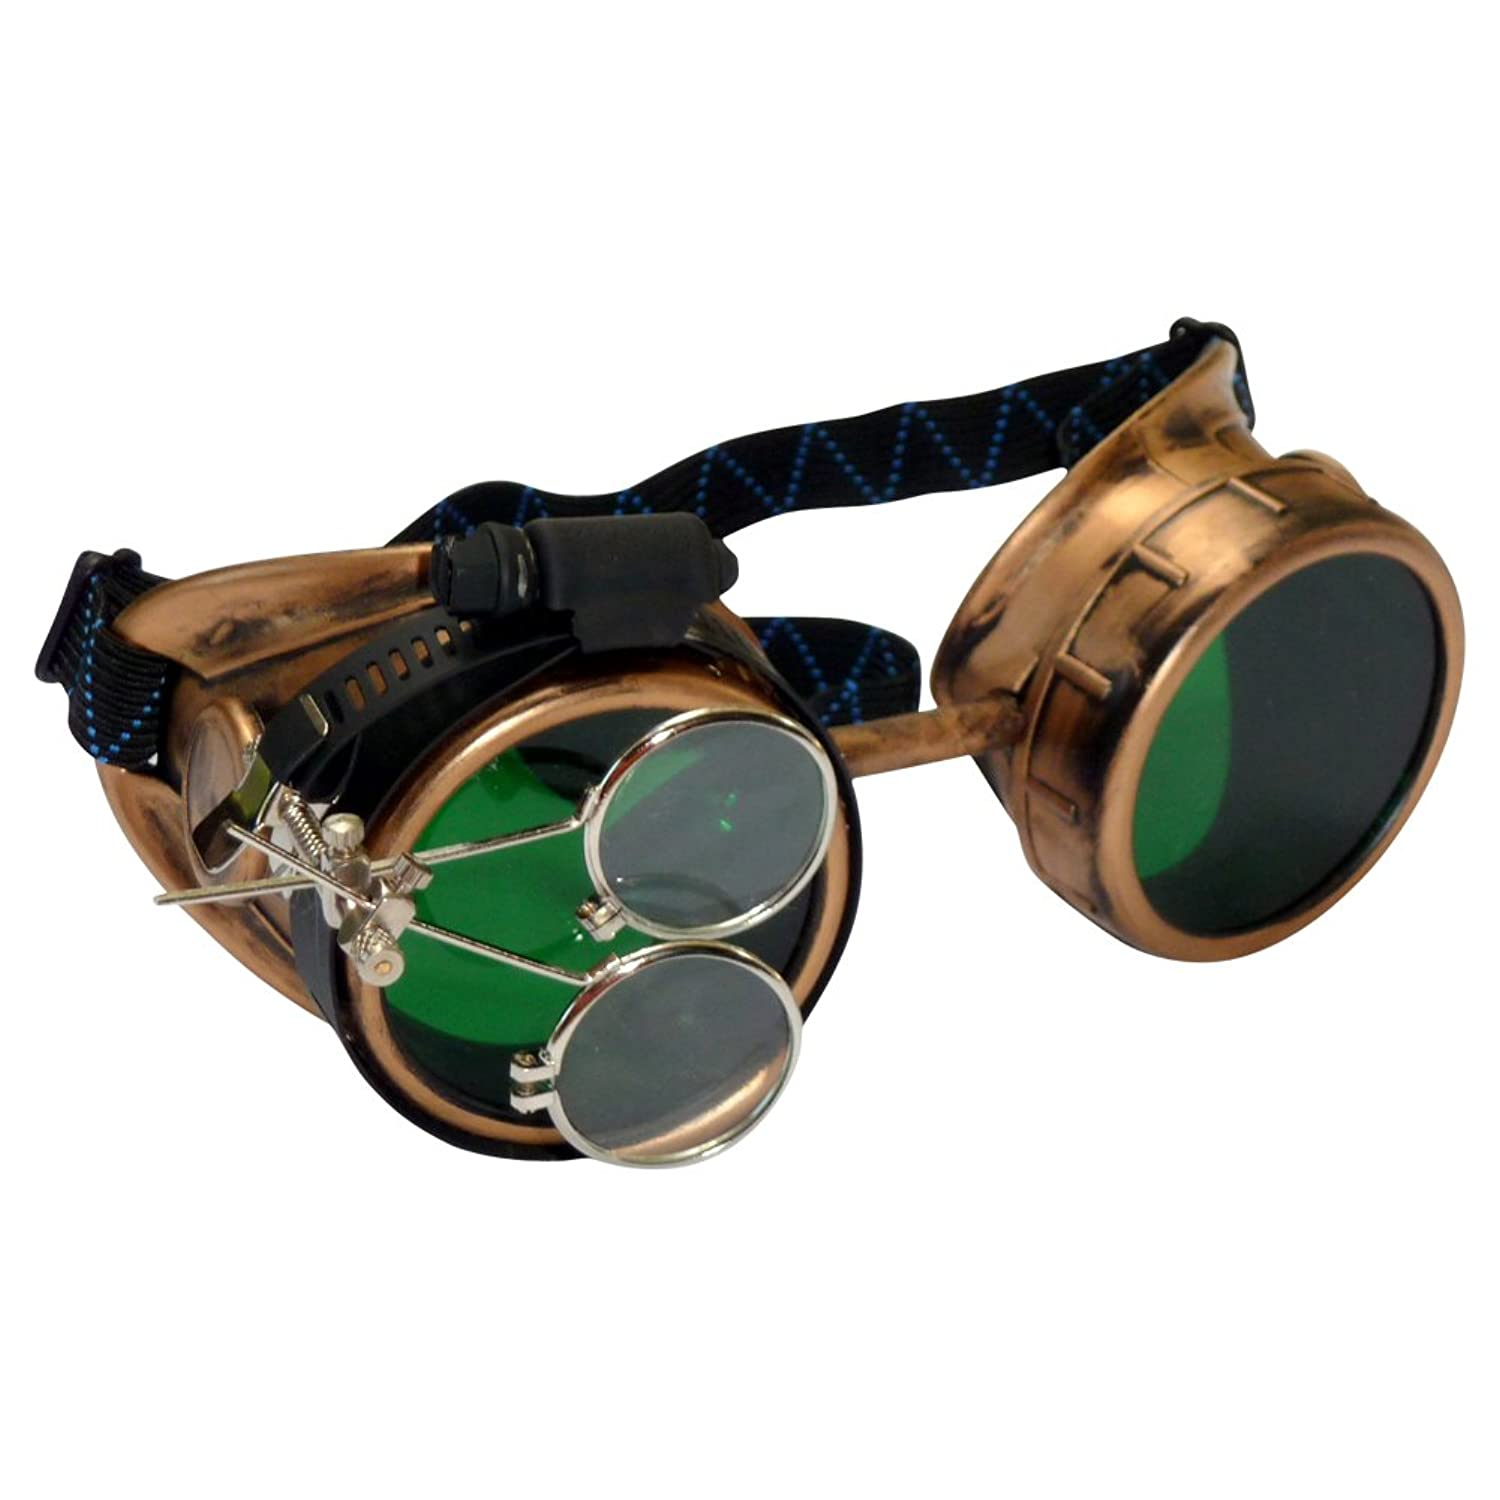 Men's Vintage Christmas Gift Ideas Steampunk Victorian Goggles Glasses gold green magnifying lens $24.99 AT vintagedancer.com